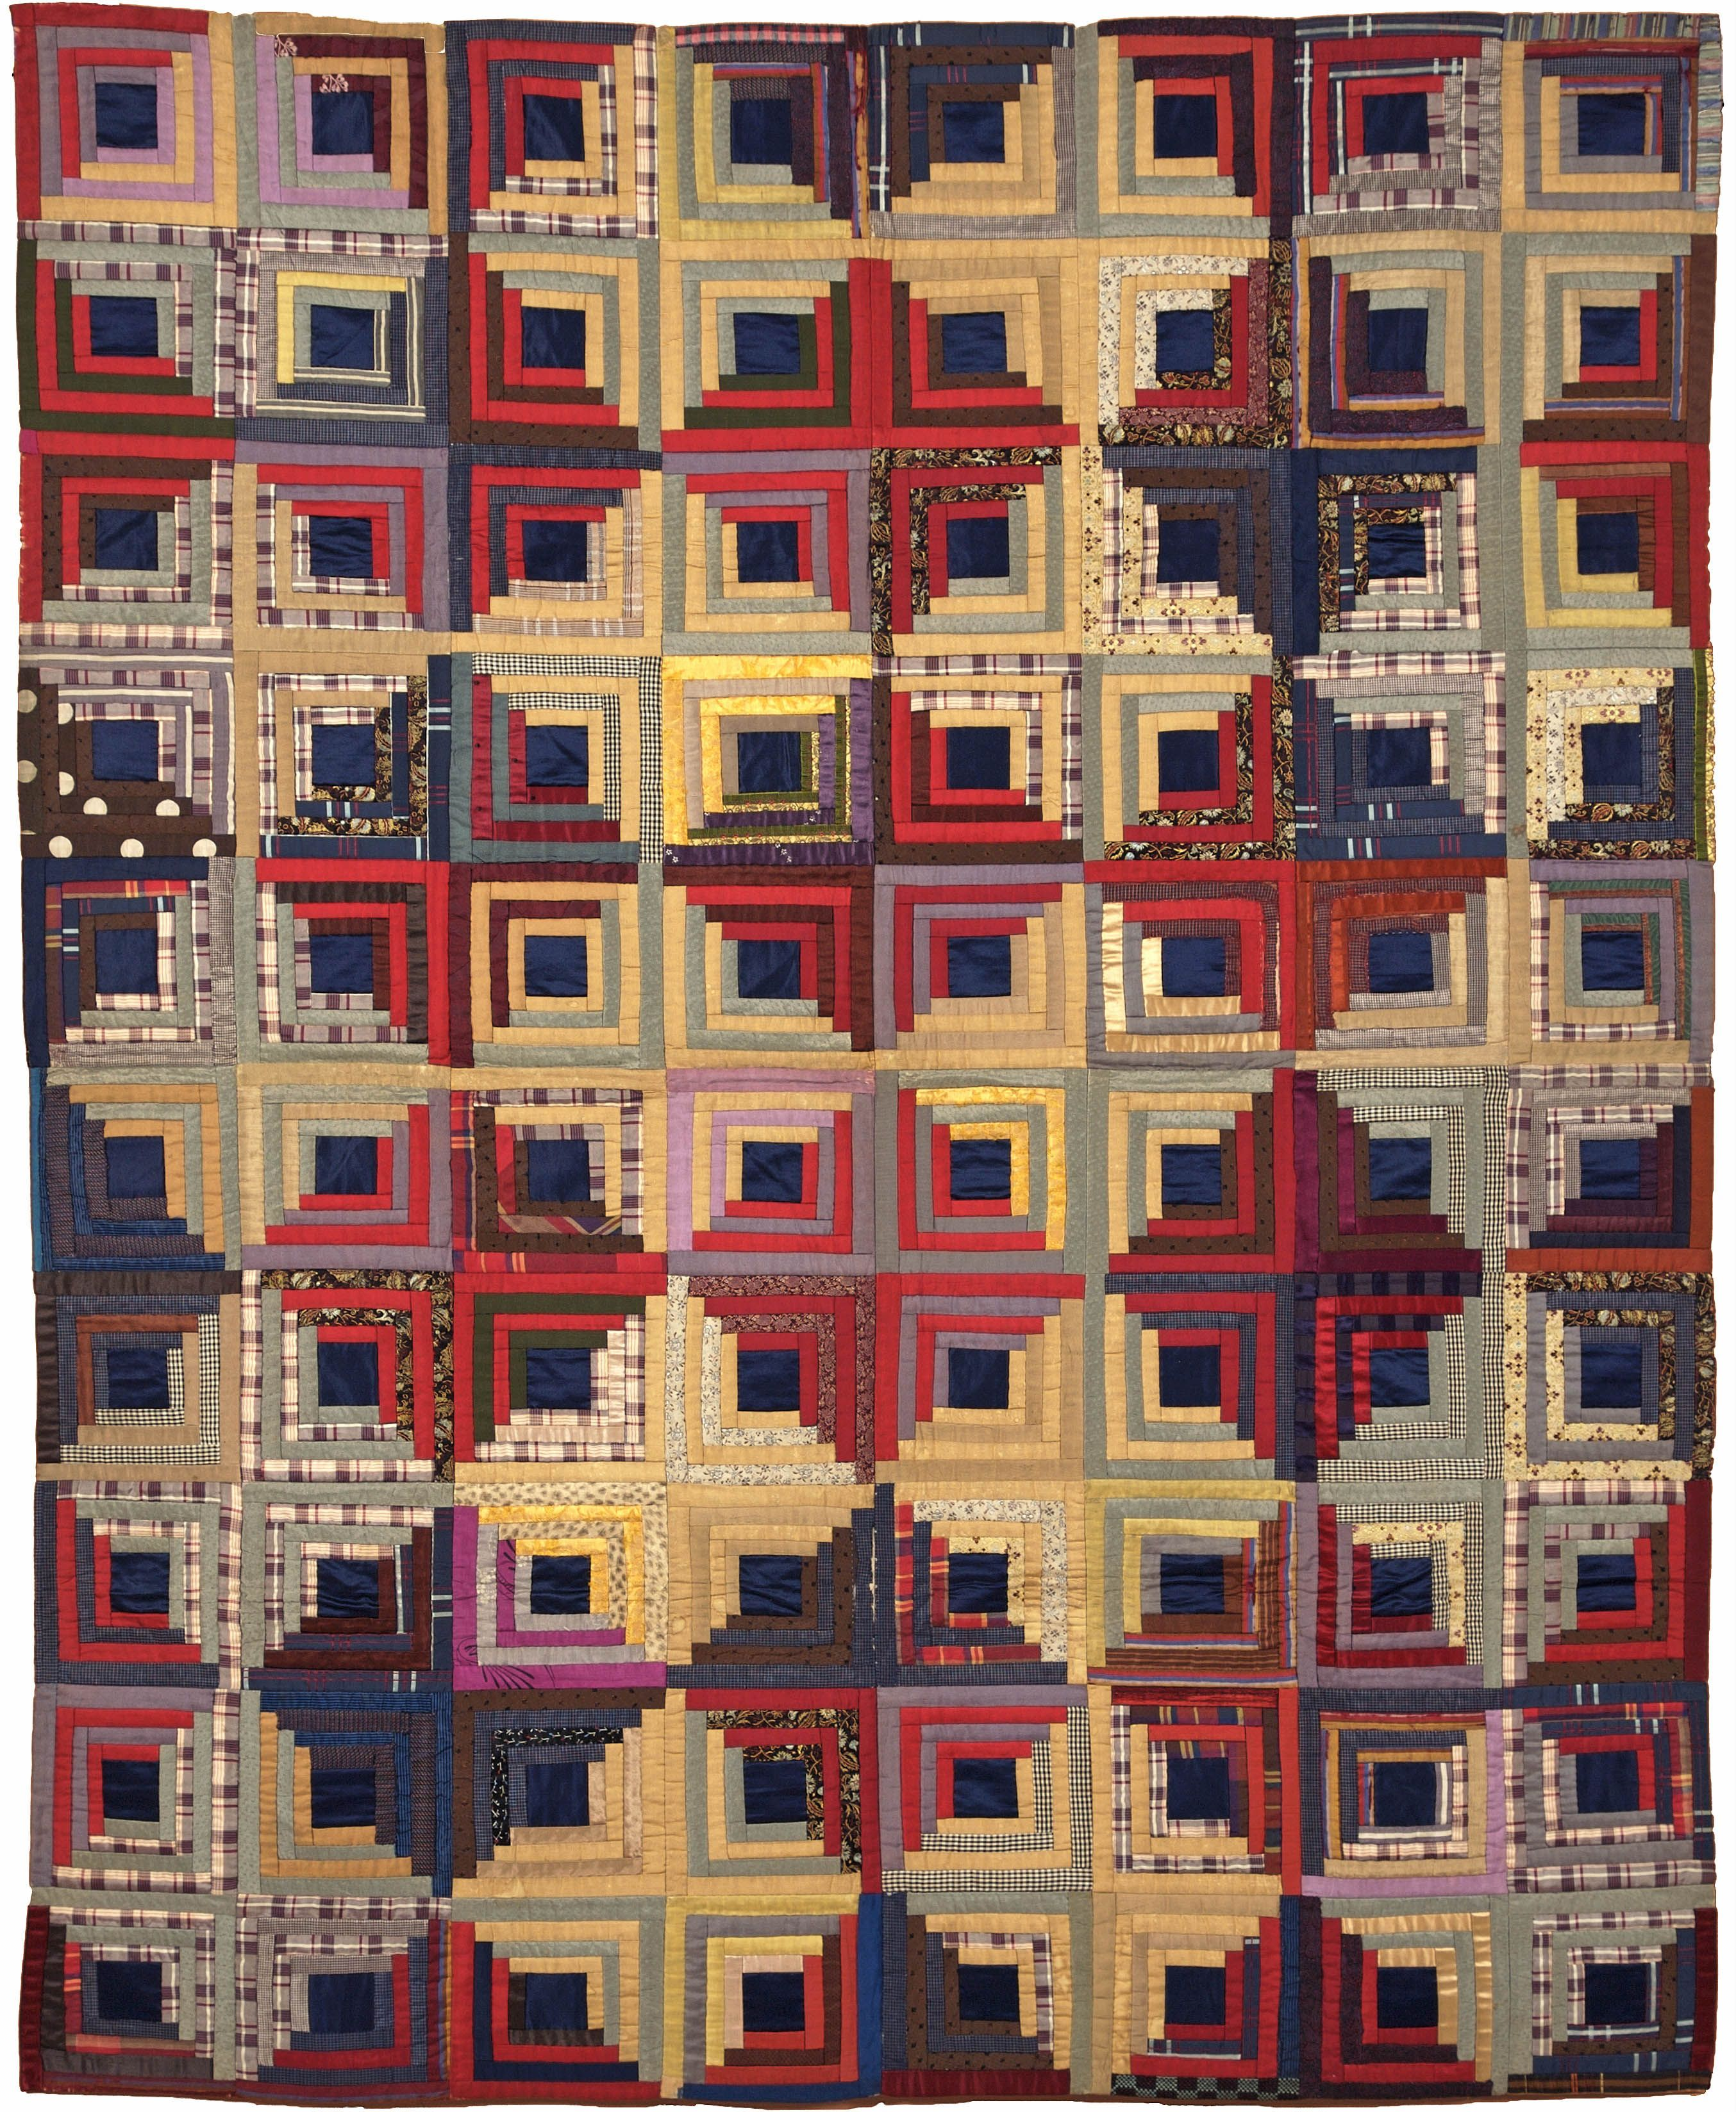 log cabin quilt patterns | Log cabin Quilt, 1875-1900 One of the ... : traditional american quilts - Adamdwight.com